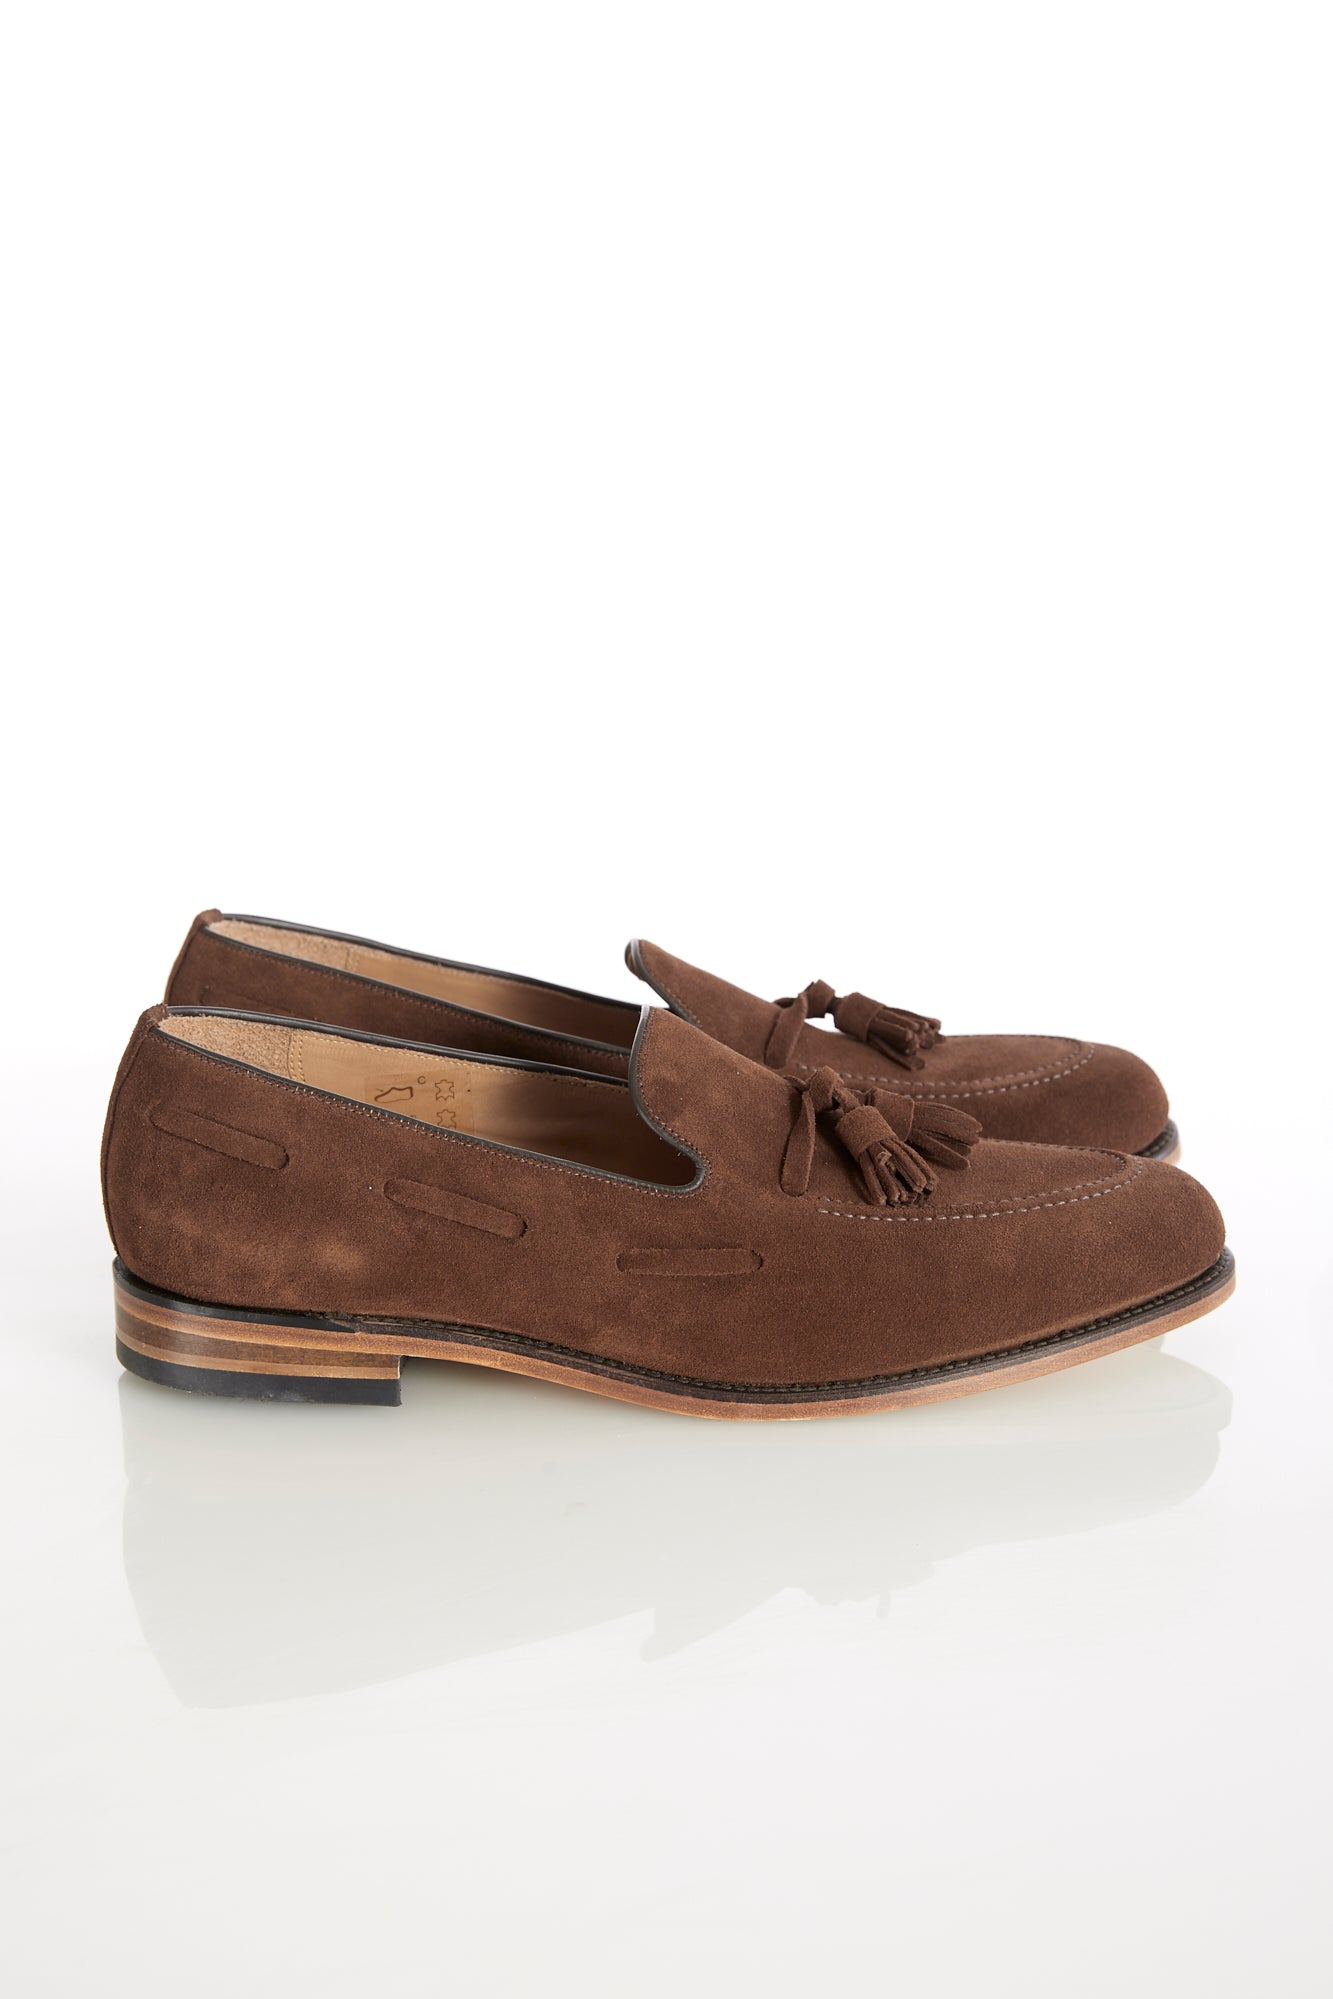 Loake 'Lincoln' Brown Suede Tassel Loafer Side